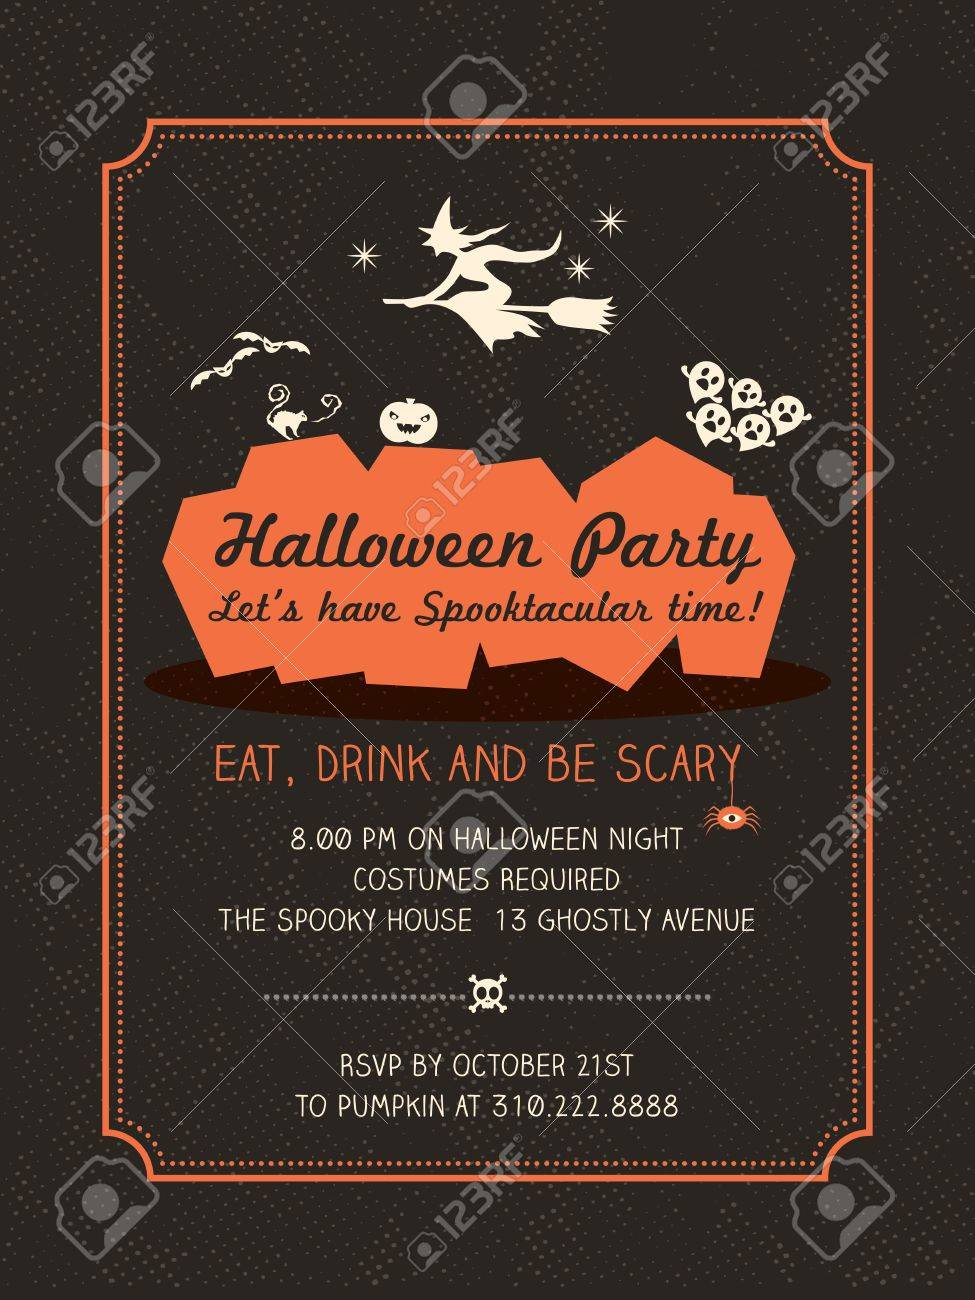 halloween party invitation template for card poster flyer royalty halloween party invitation template for card poster flyer stock vector 22160231